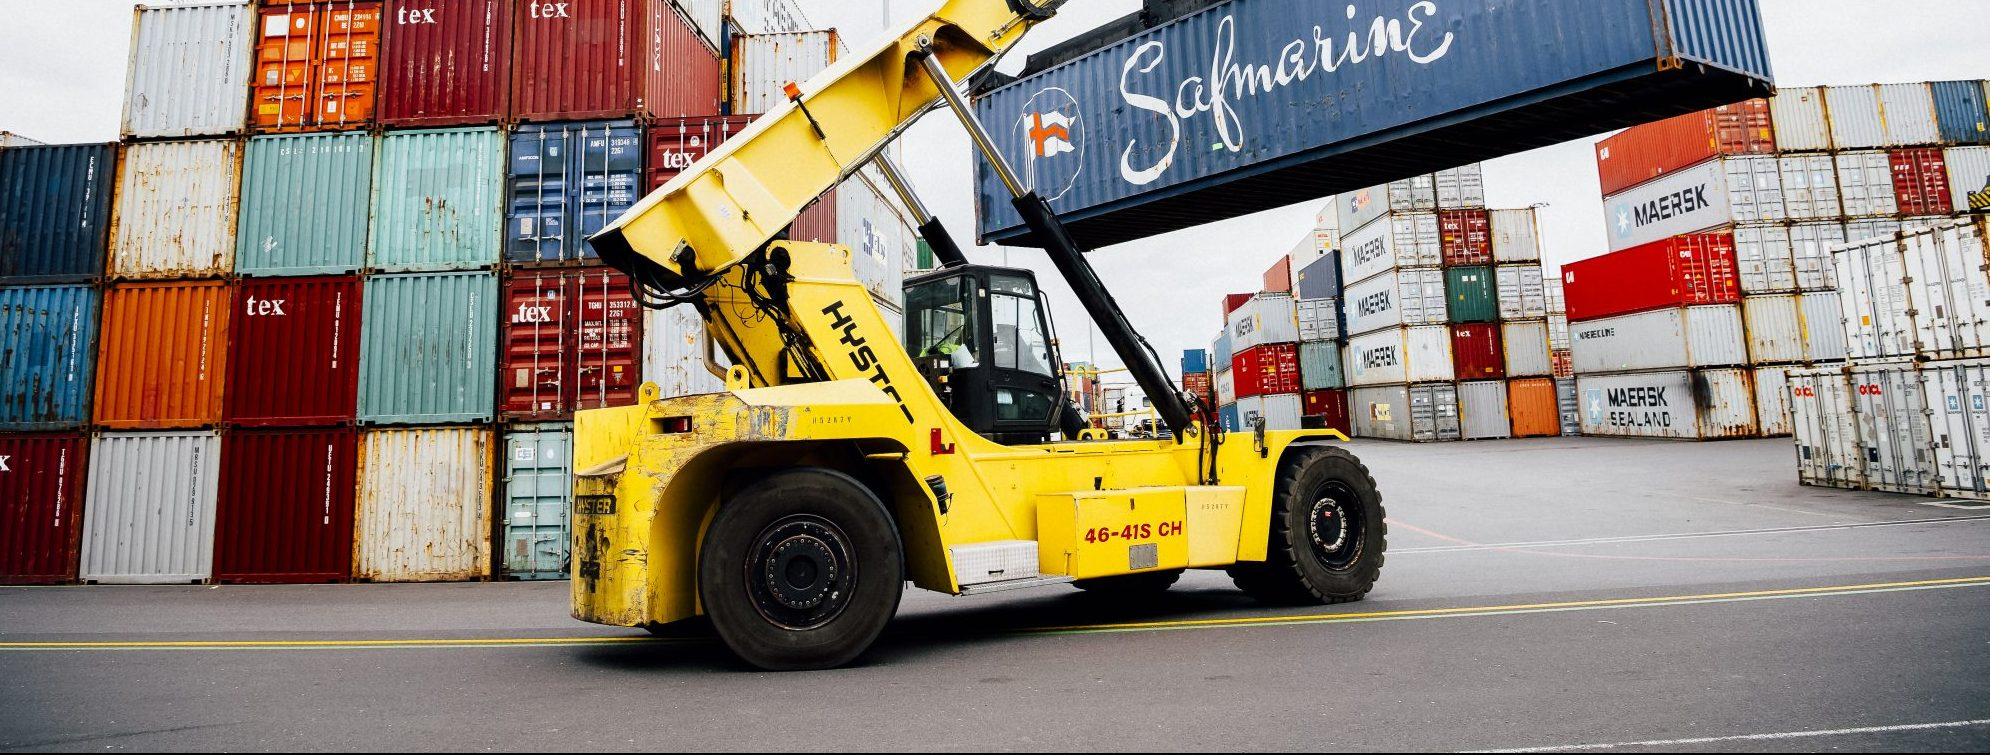 Forklift moving containers